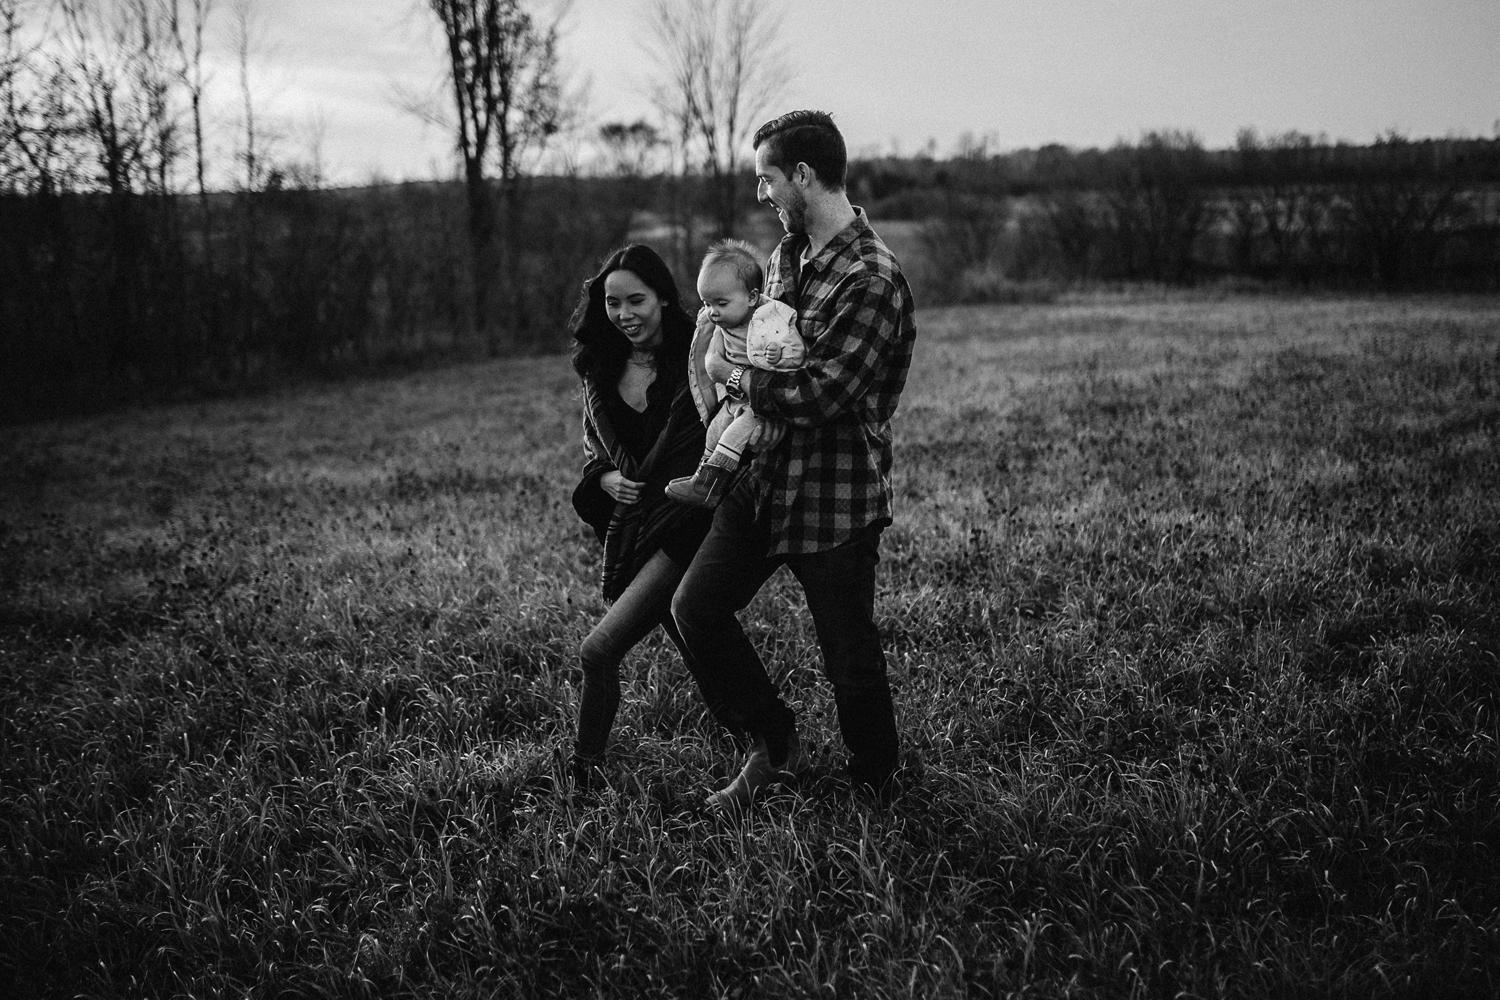 perth ontario family photography - kerry ford-001.jpg